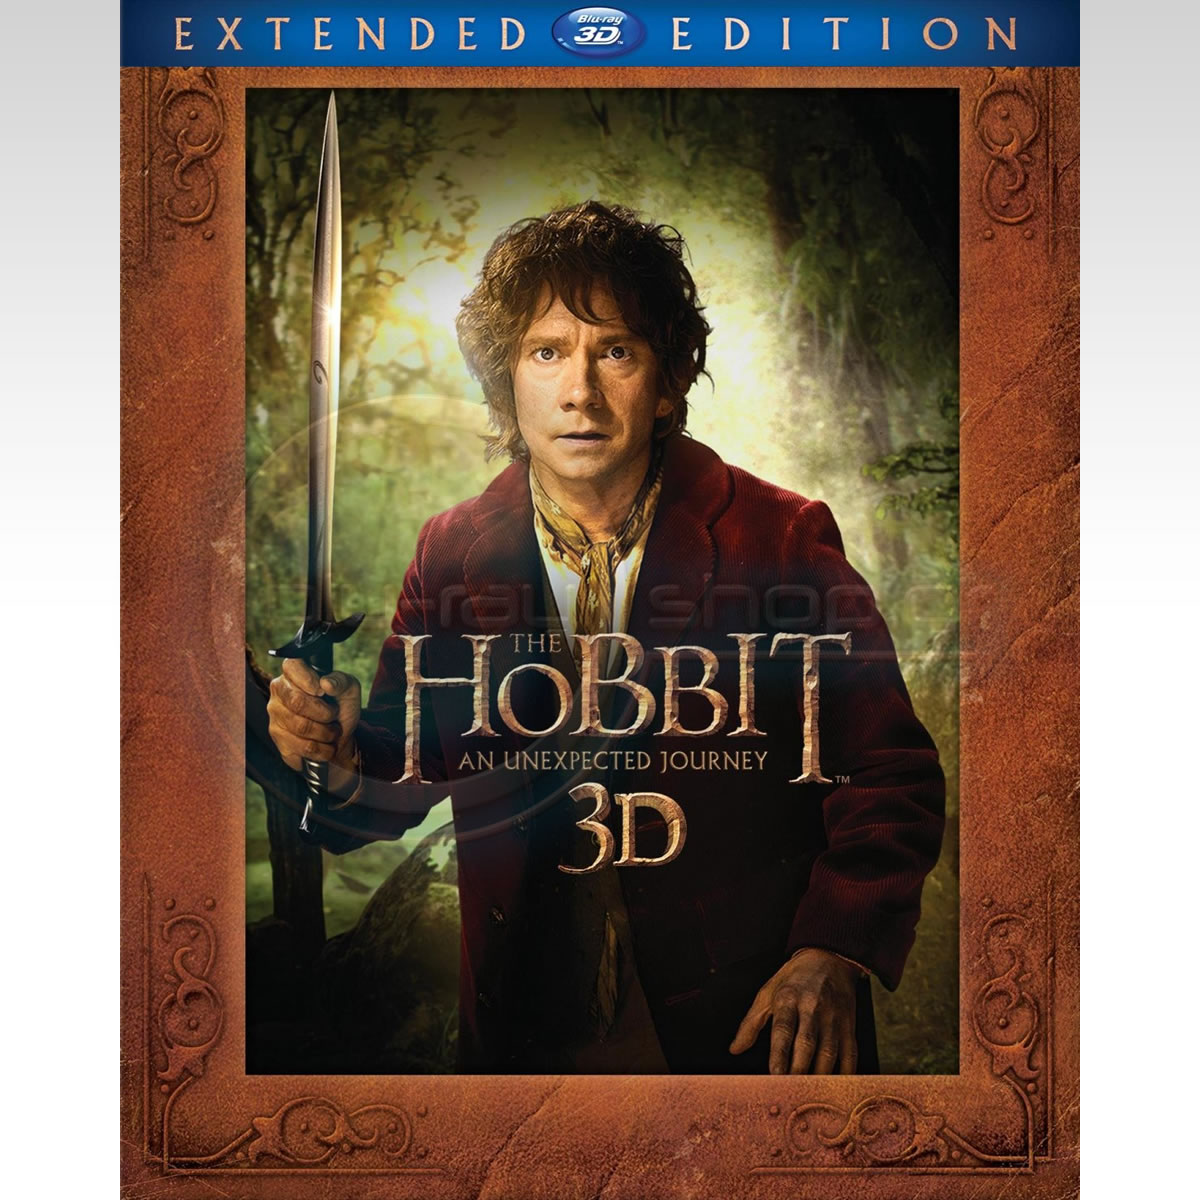 THE HOBBIT: AN UNEXPECTED JOURNEY 3D Extended Edition - THE HOBBIT: ΕΝΑ ΑΝΑΠΑΝΤΕΧΟ ΤΑΞΙΔΙ 3D Extended Edition (2 BLU-RAY 3D + 3 BLU-RAY)